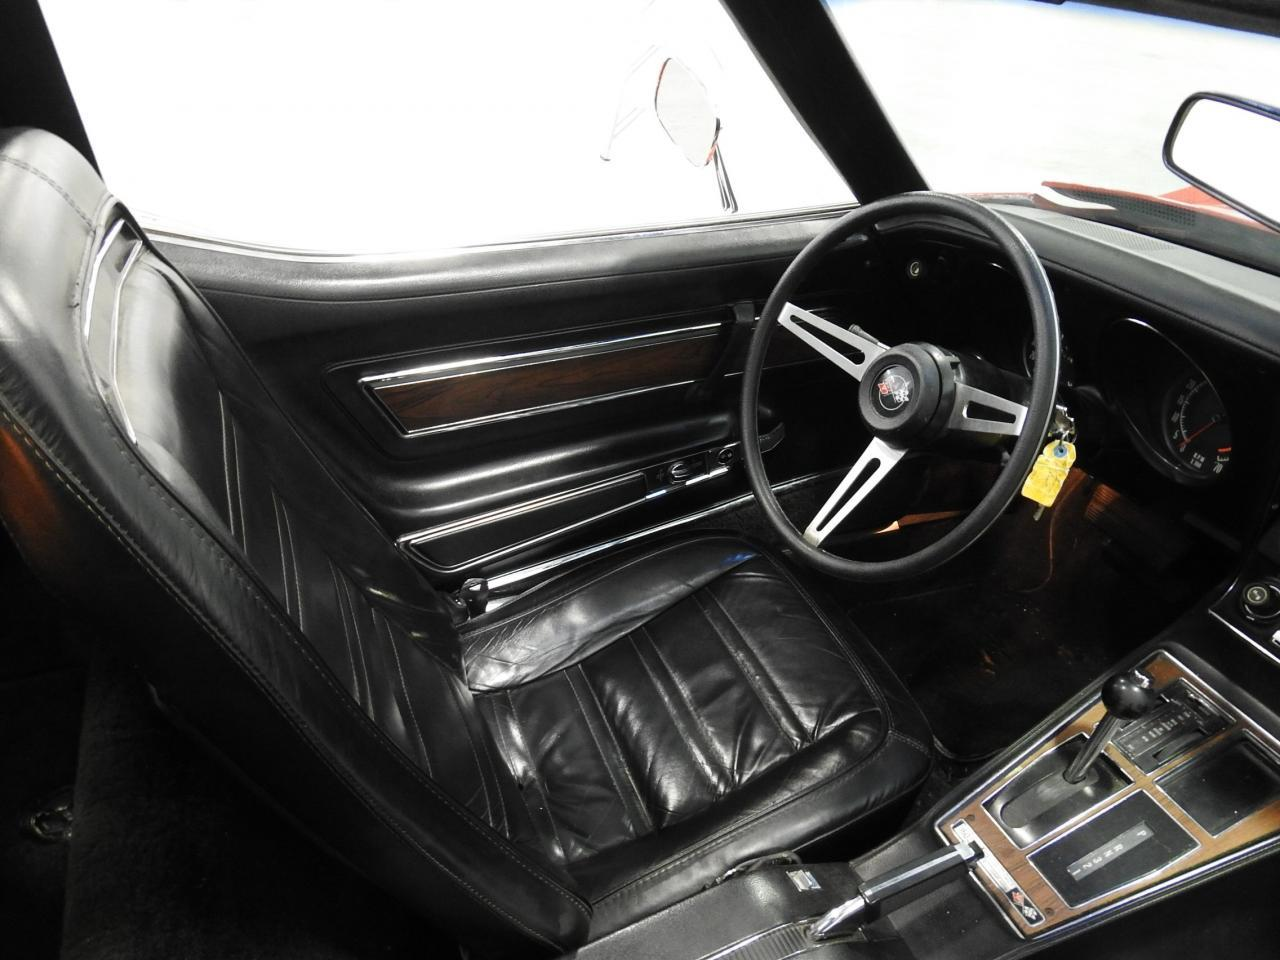 Large Picture of 1974 Chevrolet Corvette located in Kenosha Wisconsin - $17,995.00 - L7ZH